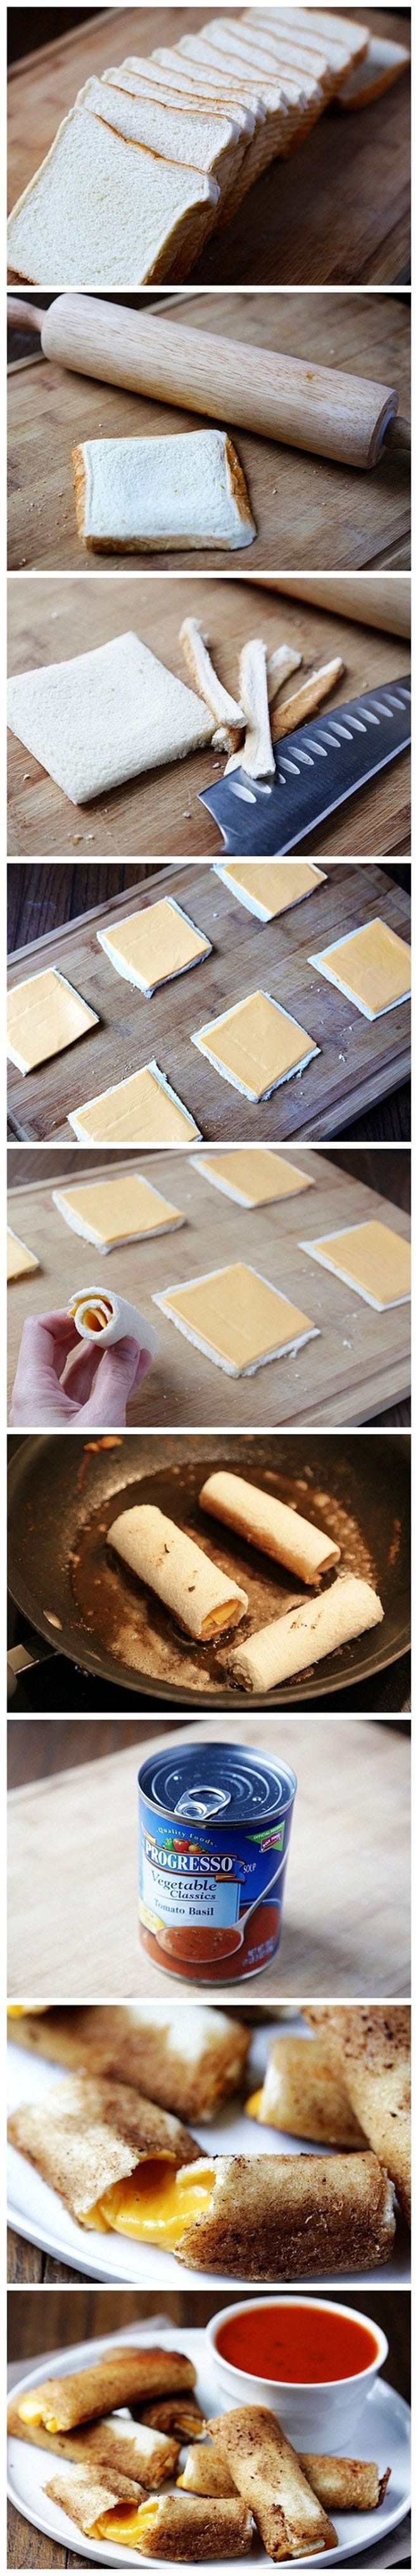 AD-Creative-Food-Hacks-That-Will-Change-The-Way-You-Cook-05